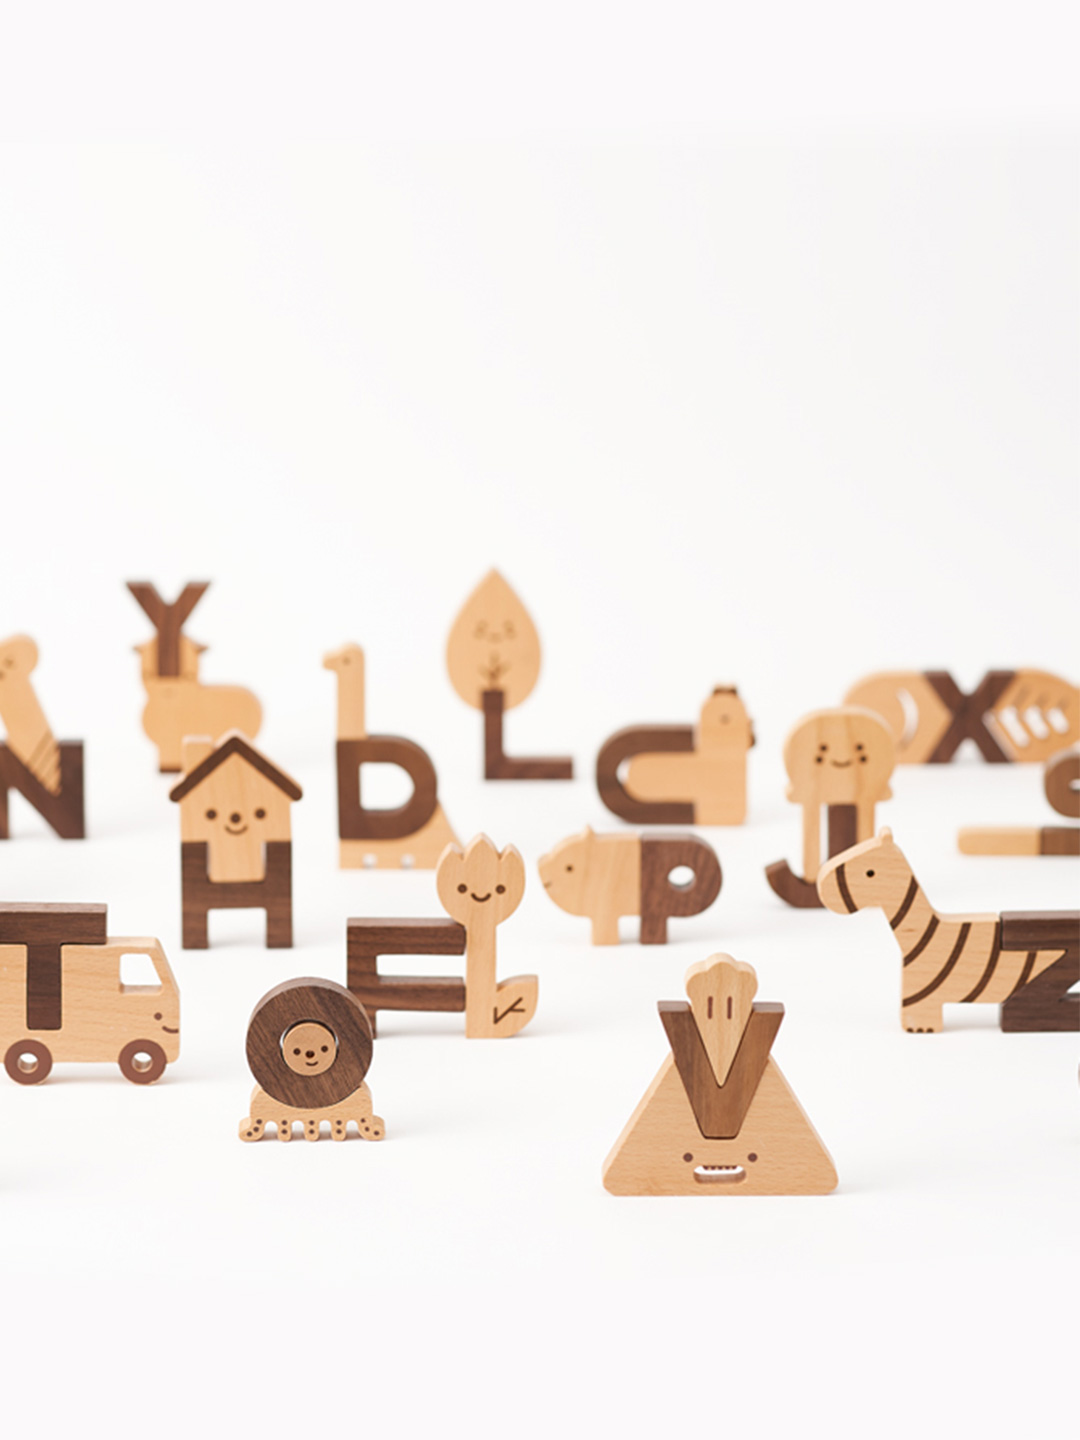 Oioiooi Alphabet Block Set